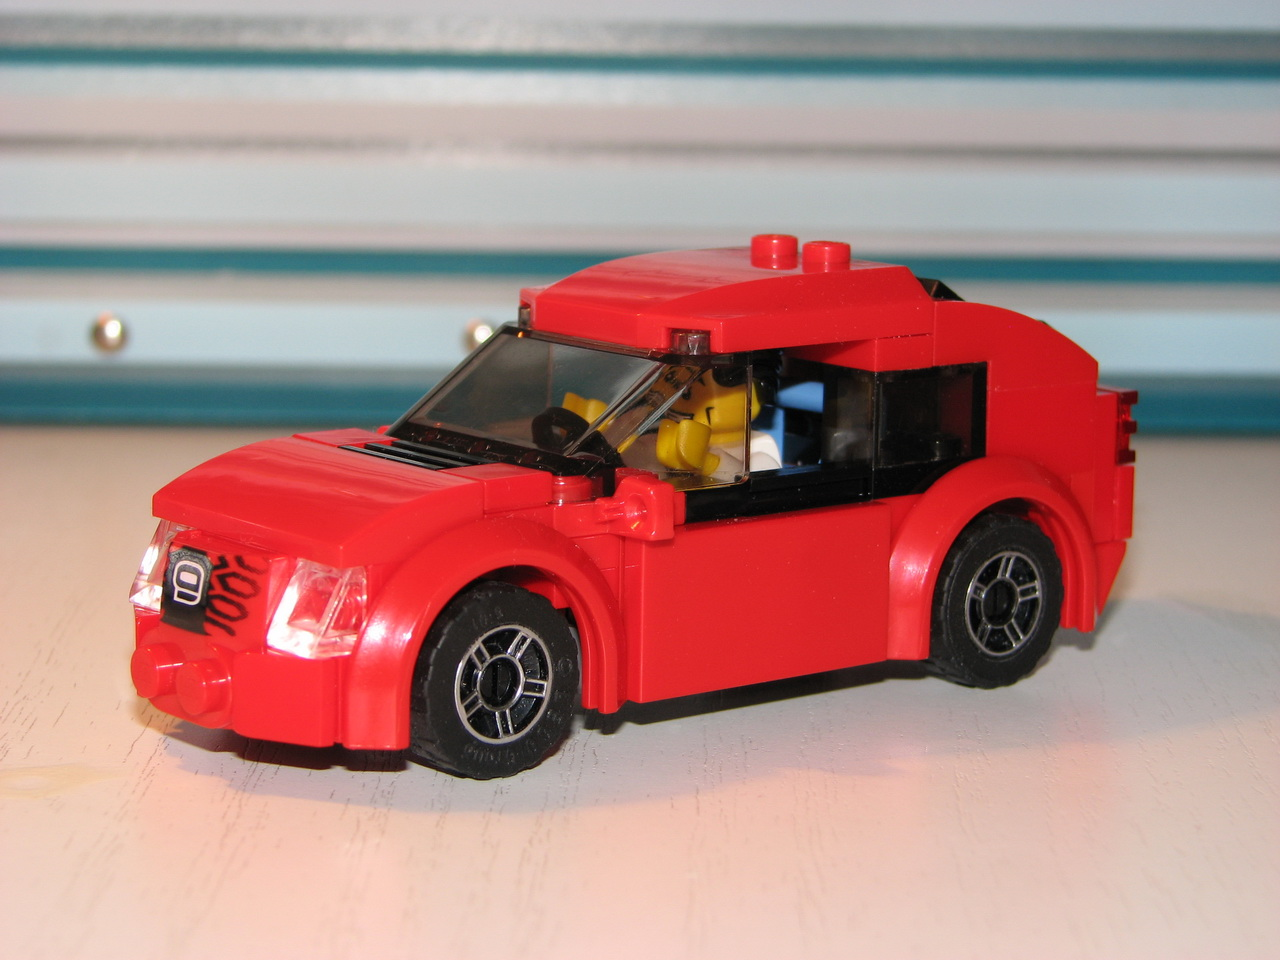 Marvelous Red Sport Car: A LEGO® Creation By Lego Amaryl From Trantor : MOCpages.com